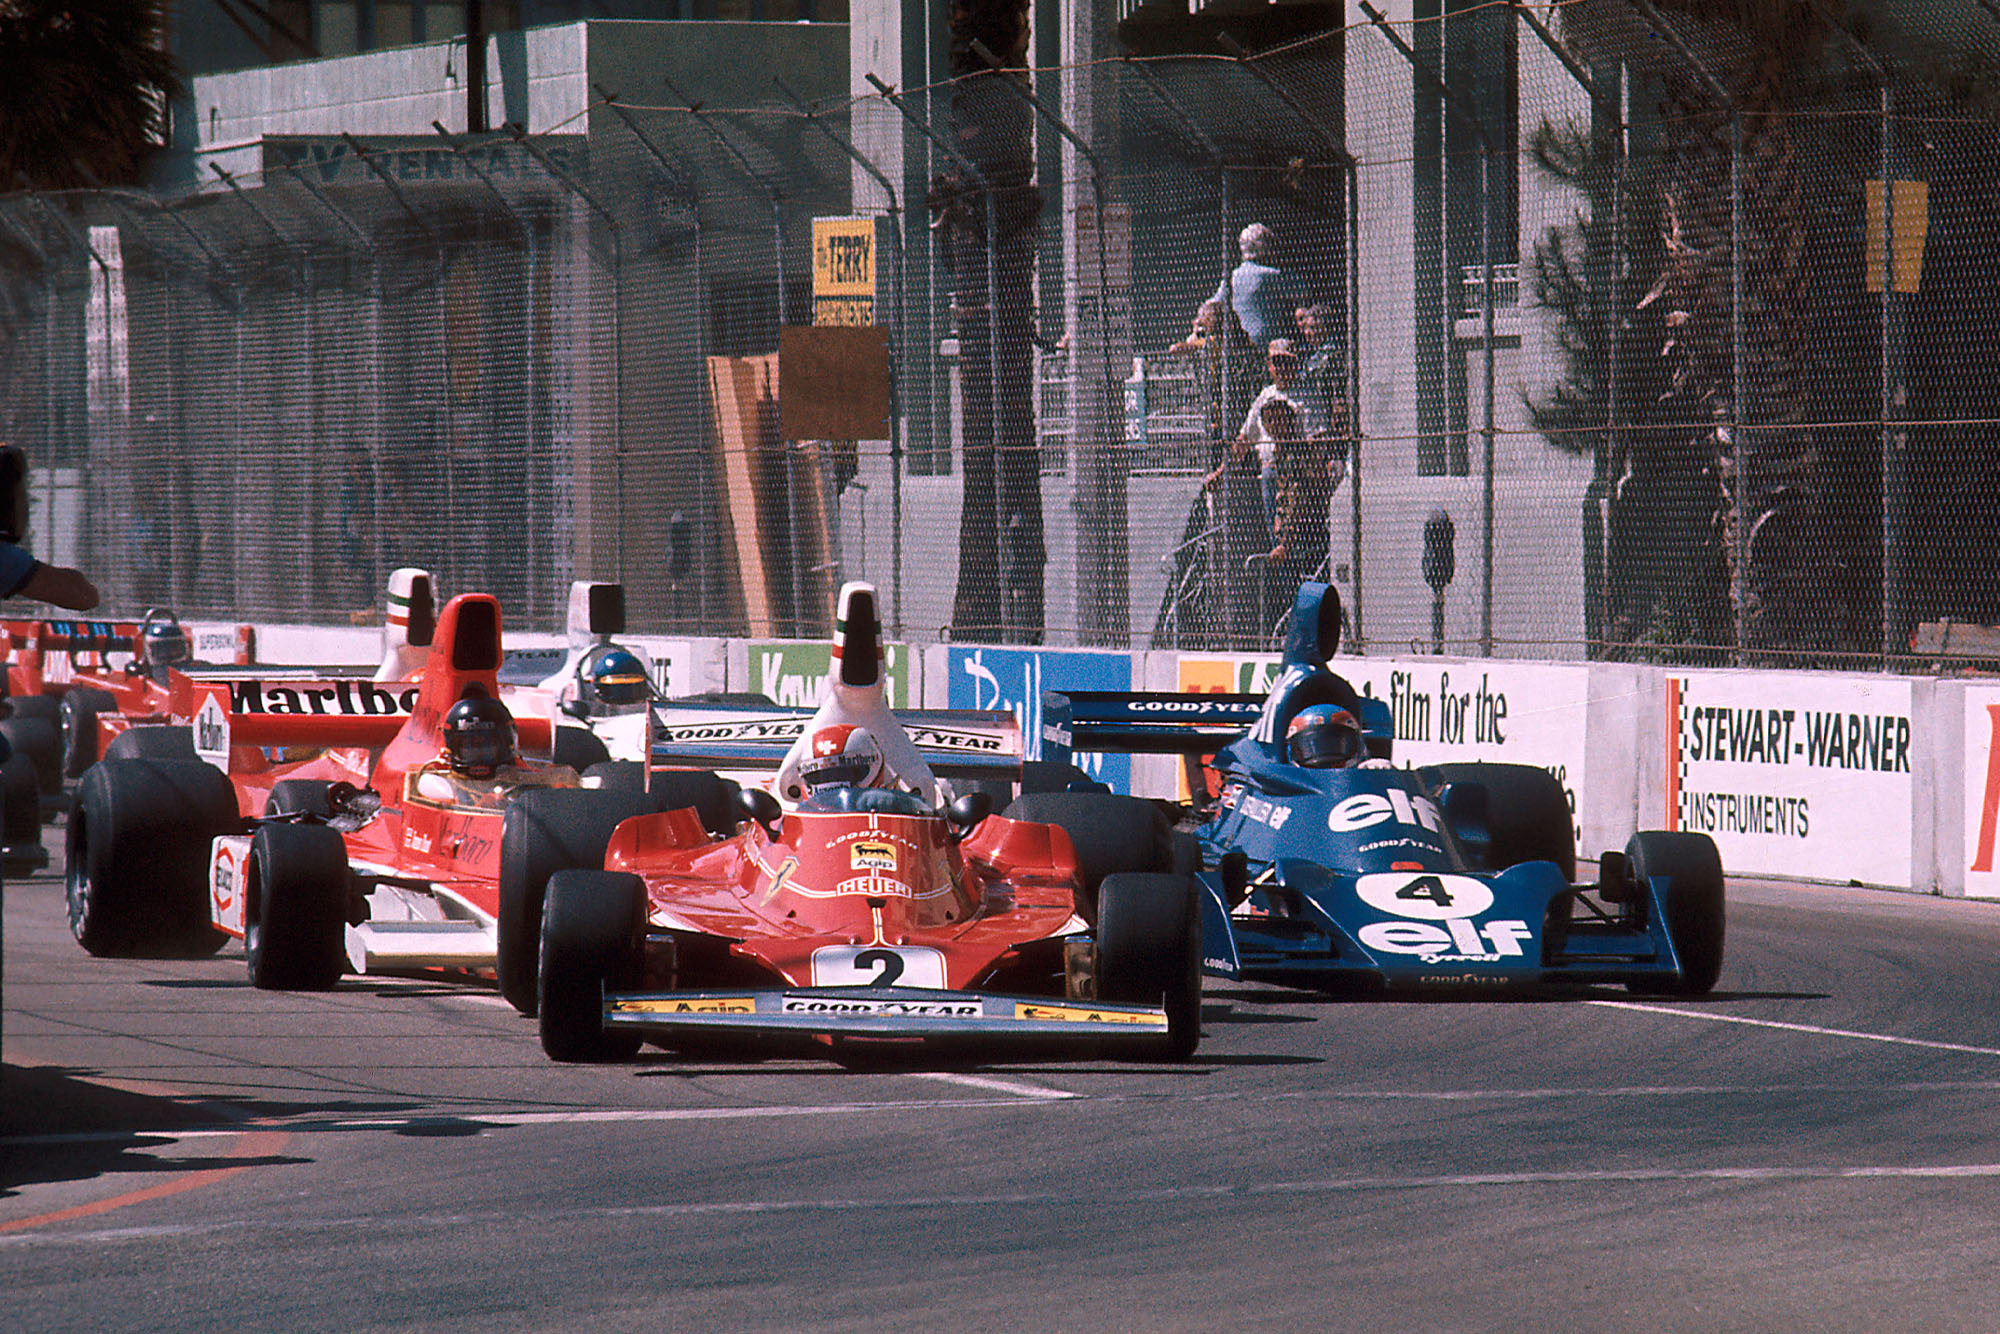 The cars squeeze into Turn 1 at the start of the 1976 United States Grand Prix, Long Beach.